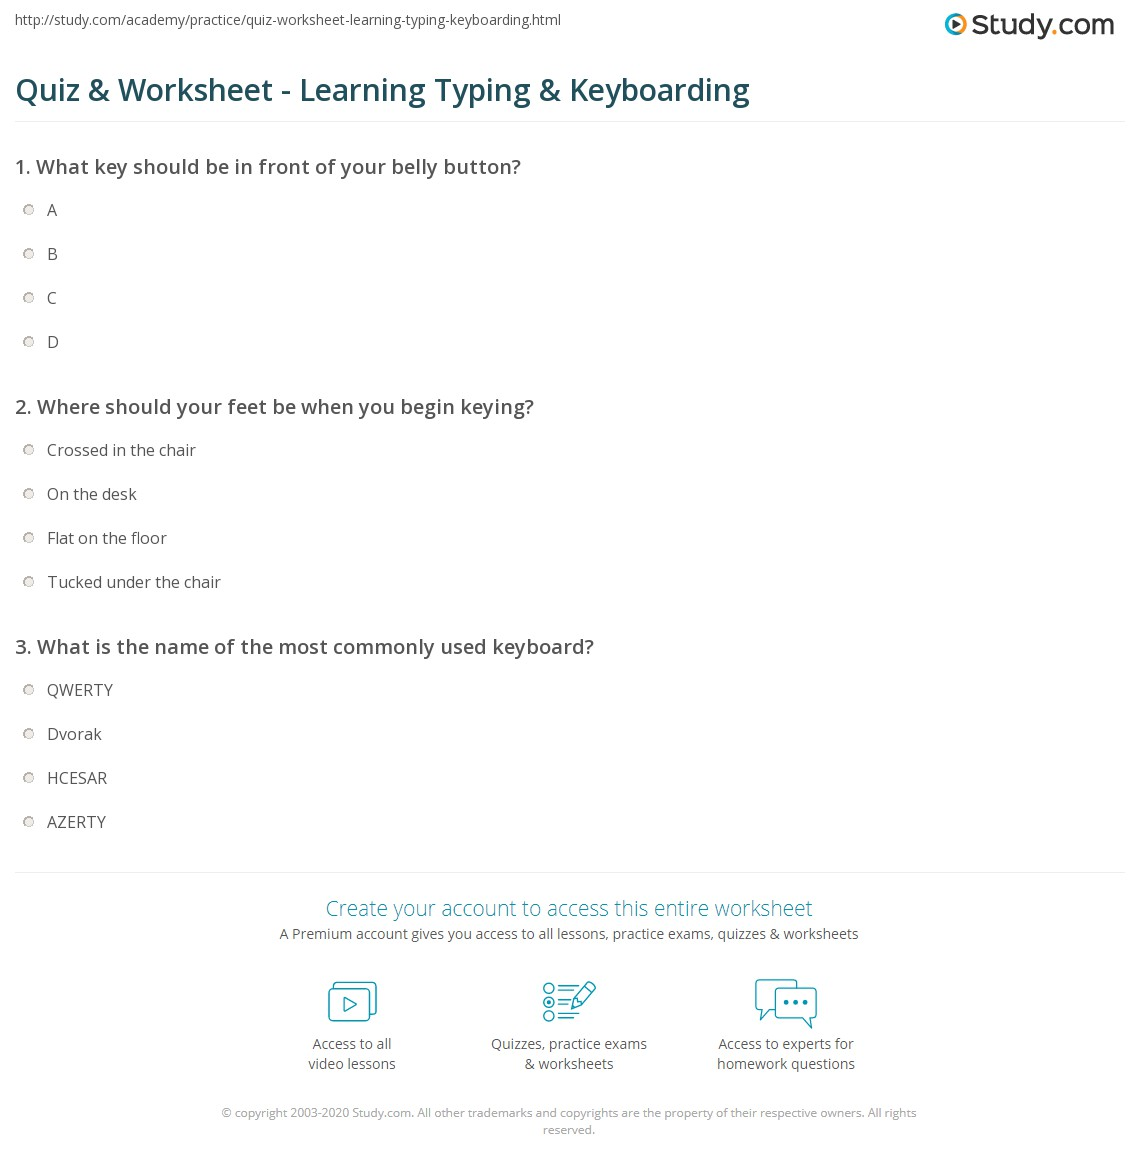 Worksheets Keyboarding Worksheets quiz worksheet learning typing keyboarding study com print how to learn type worksheet